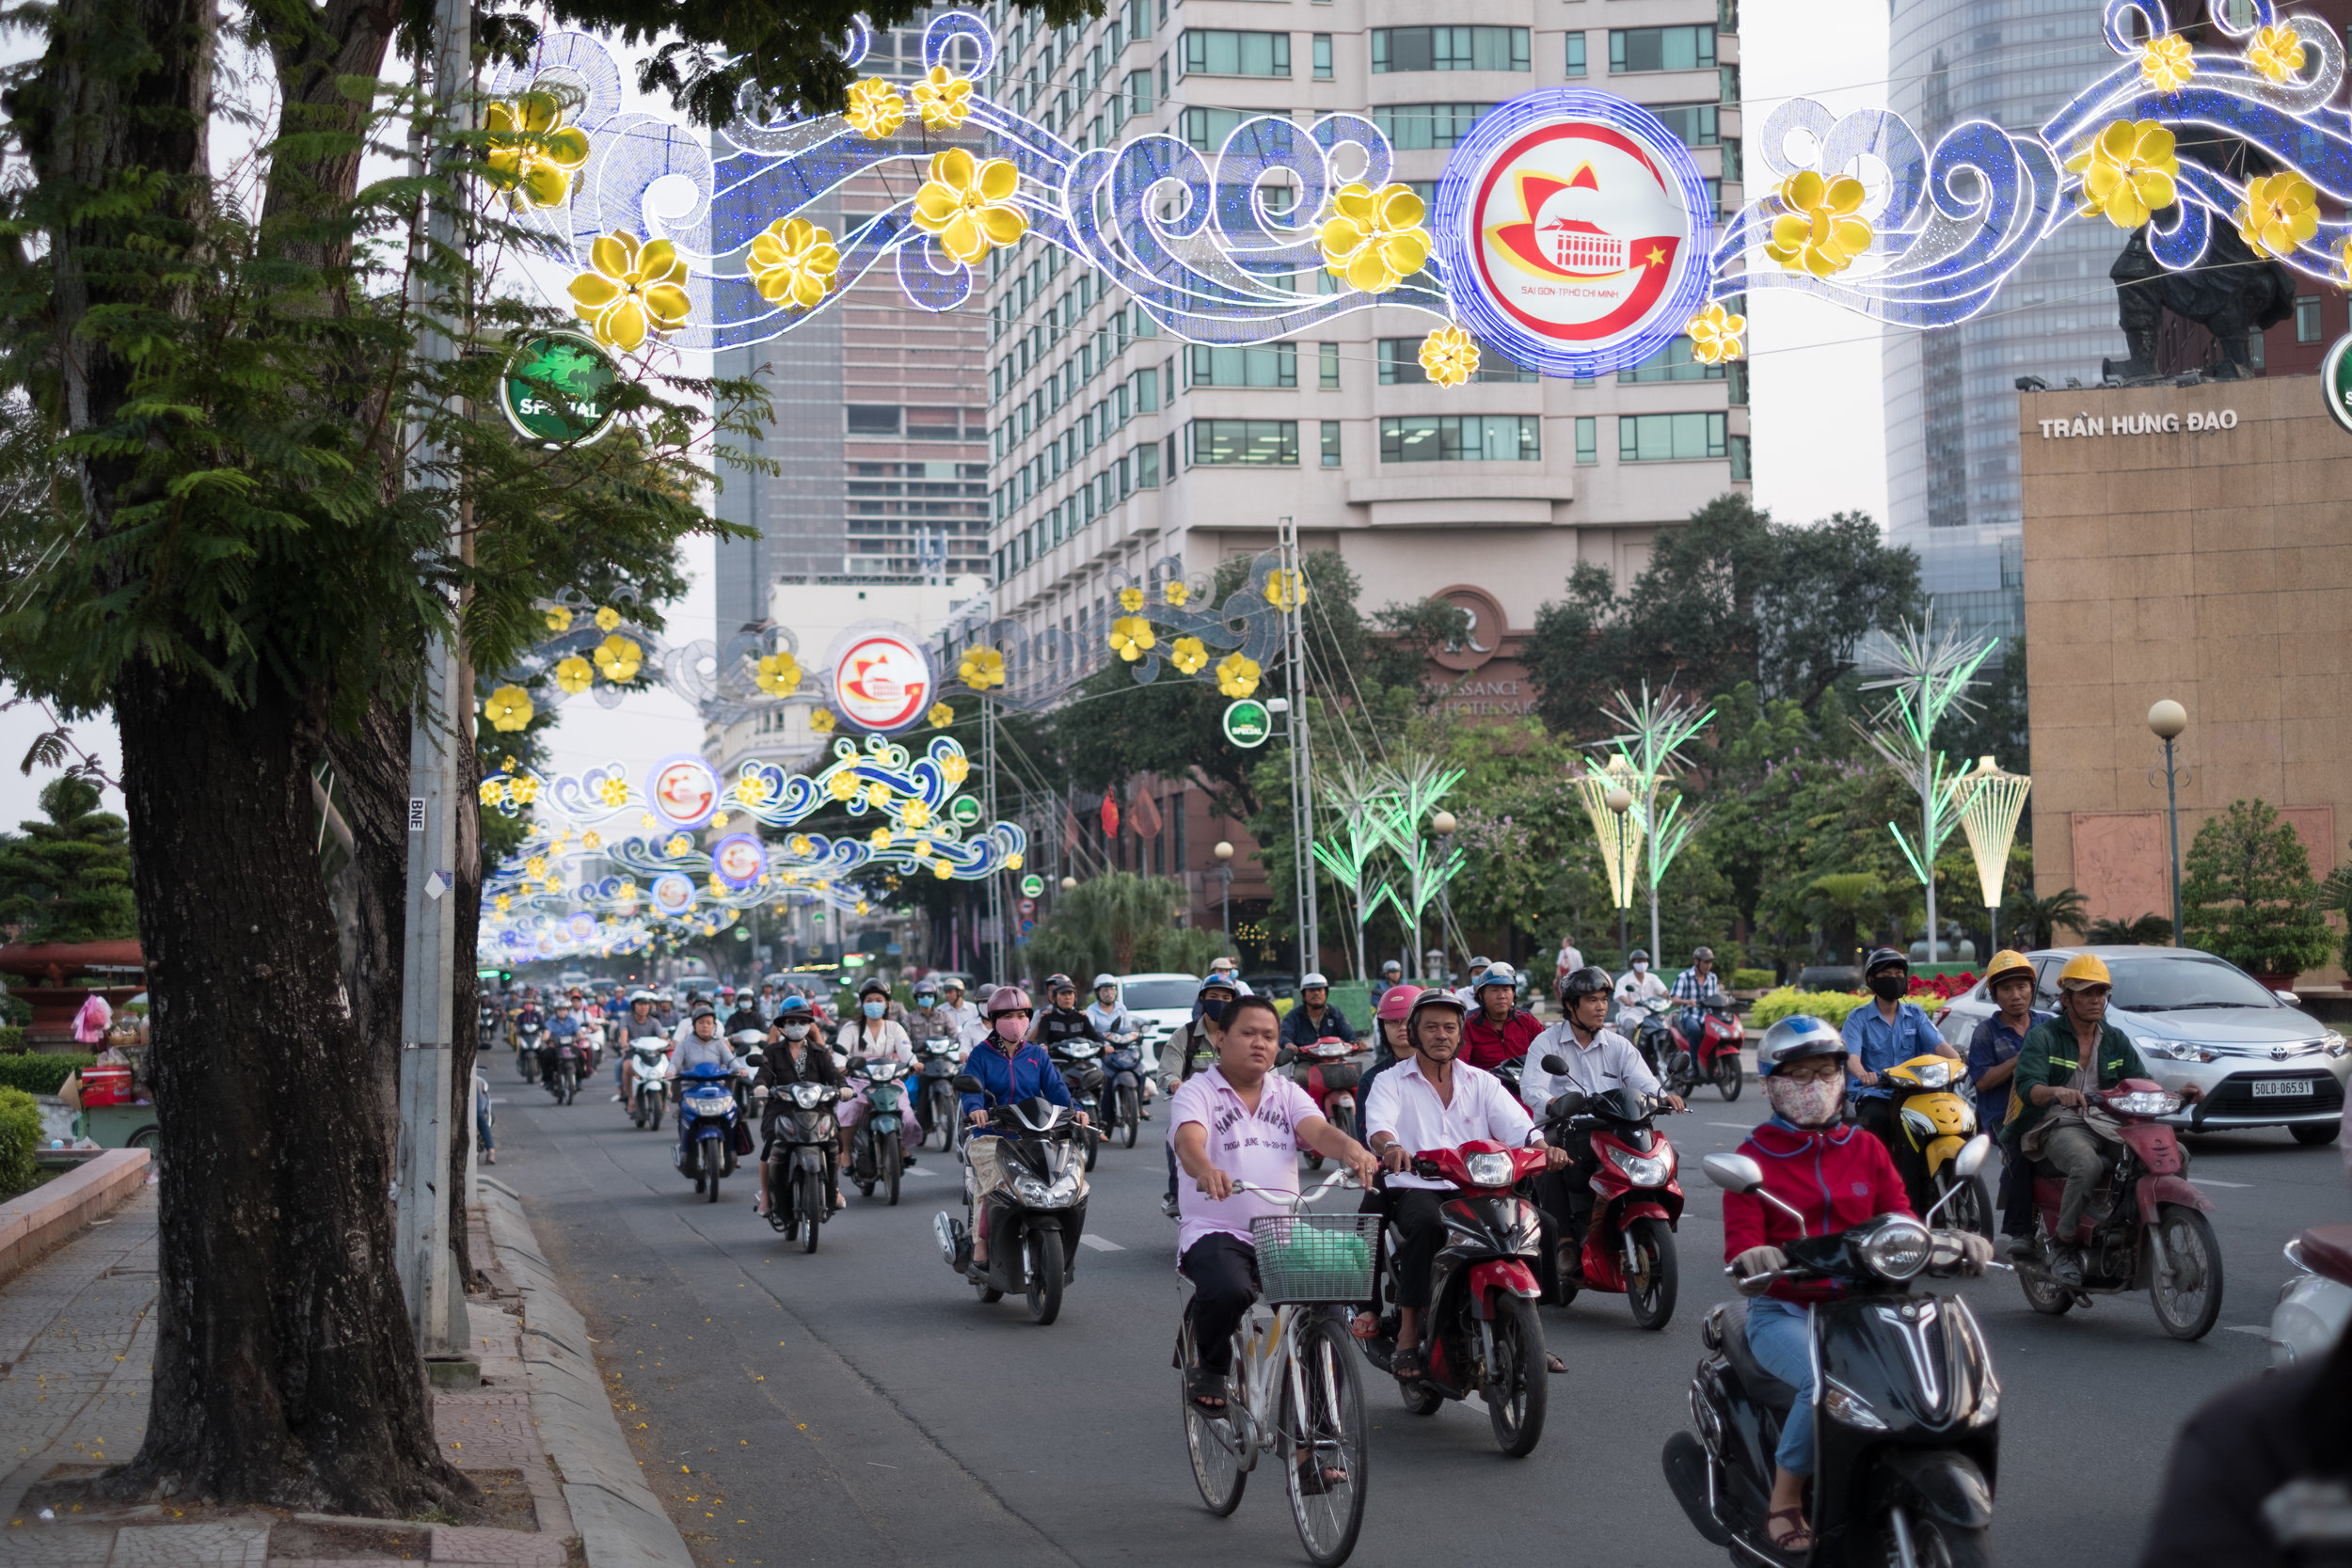 Scooter traffic along a busy road in Ho Chi Minh City in Vietnam